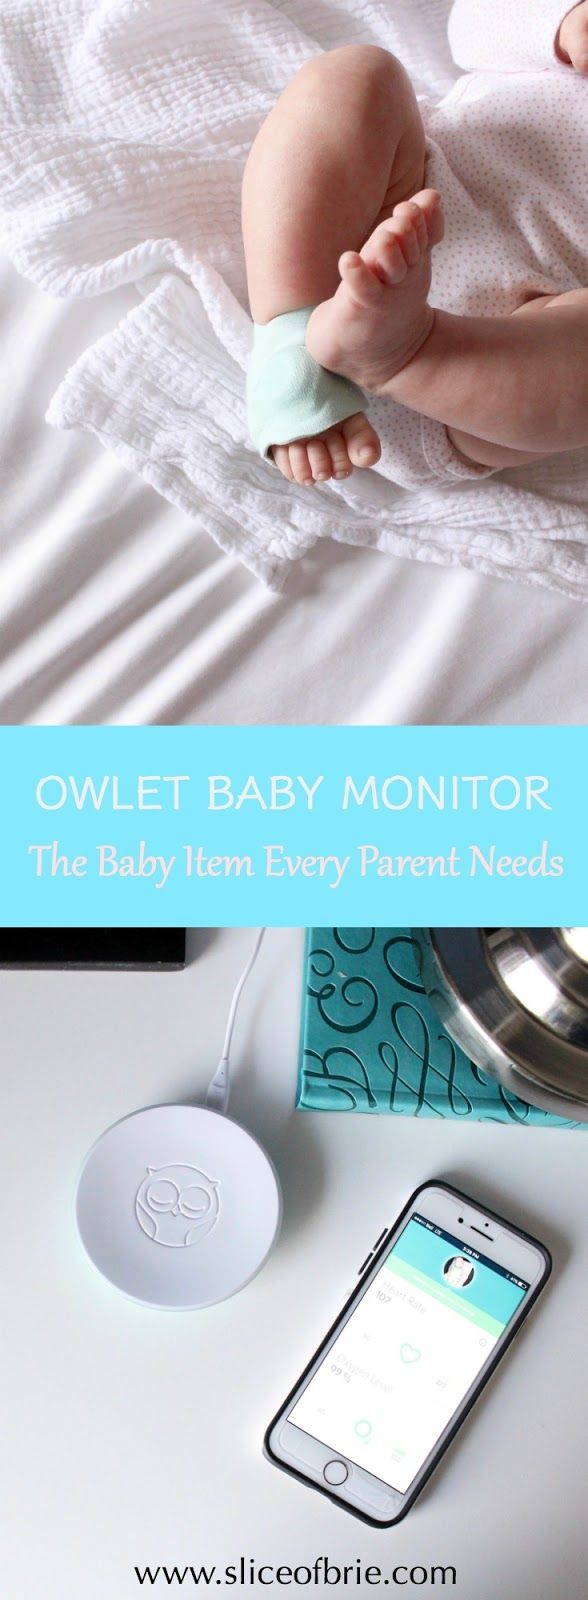 Owlet Baby Monitor Review - The Baby Item Every Parent Needs